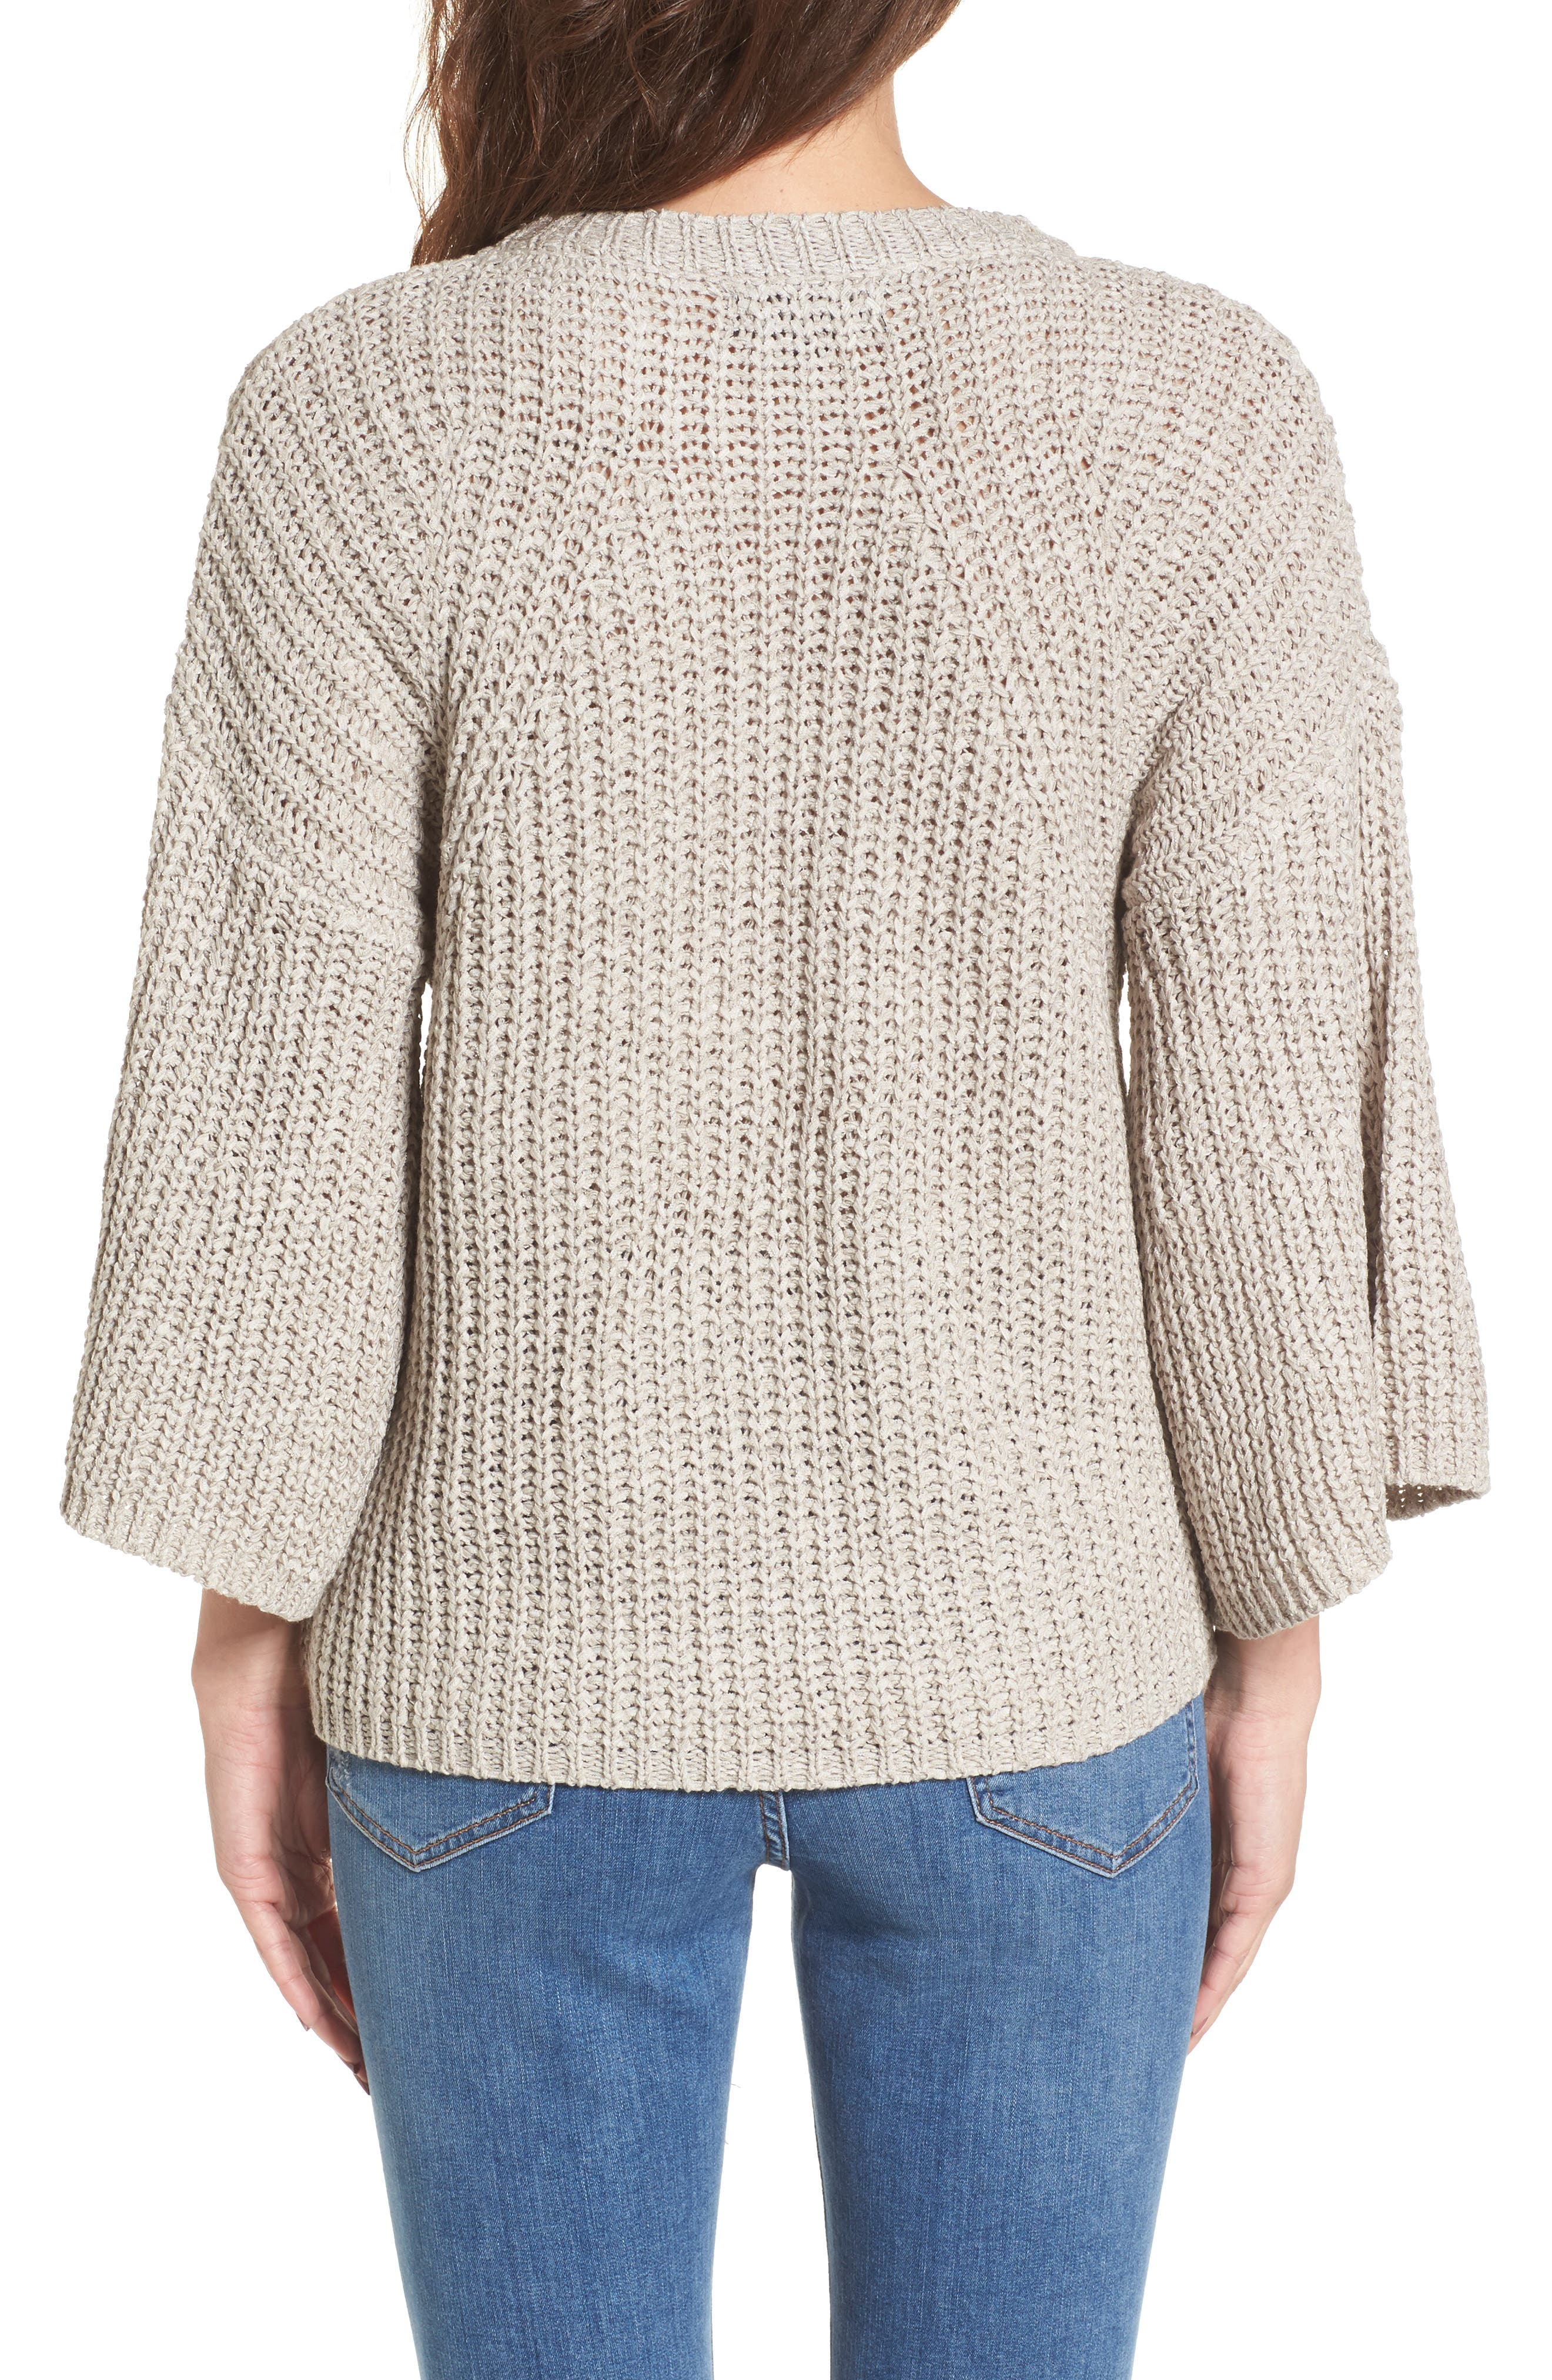 Bell Sleeve Sweater,                             Alternate thumbnail 2, color,                             280